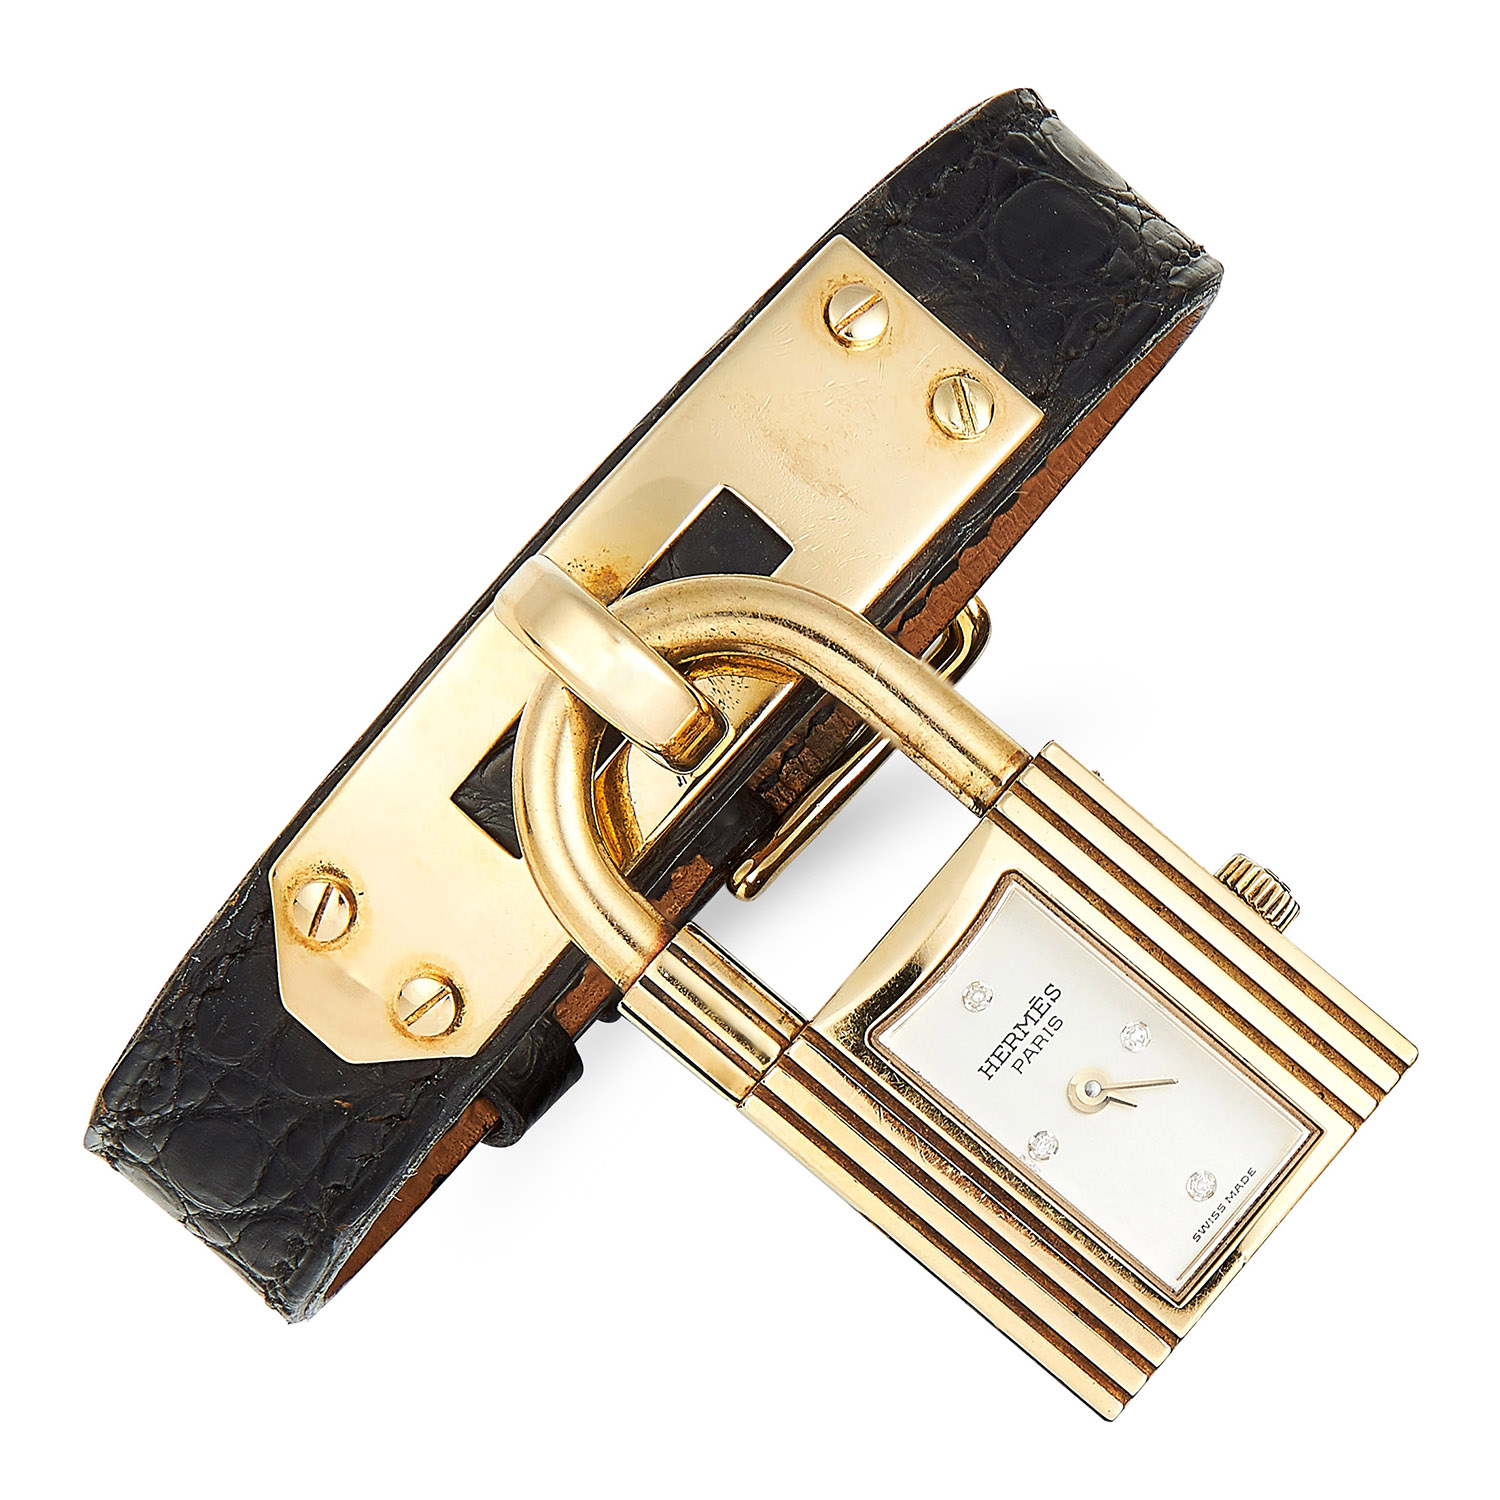 Los 263 - KELLY BAG DIAMOND AND LEATHER PADLOCK WATCH, HERMES in 18ct yellow gold, designed as a padlock